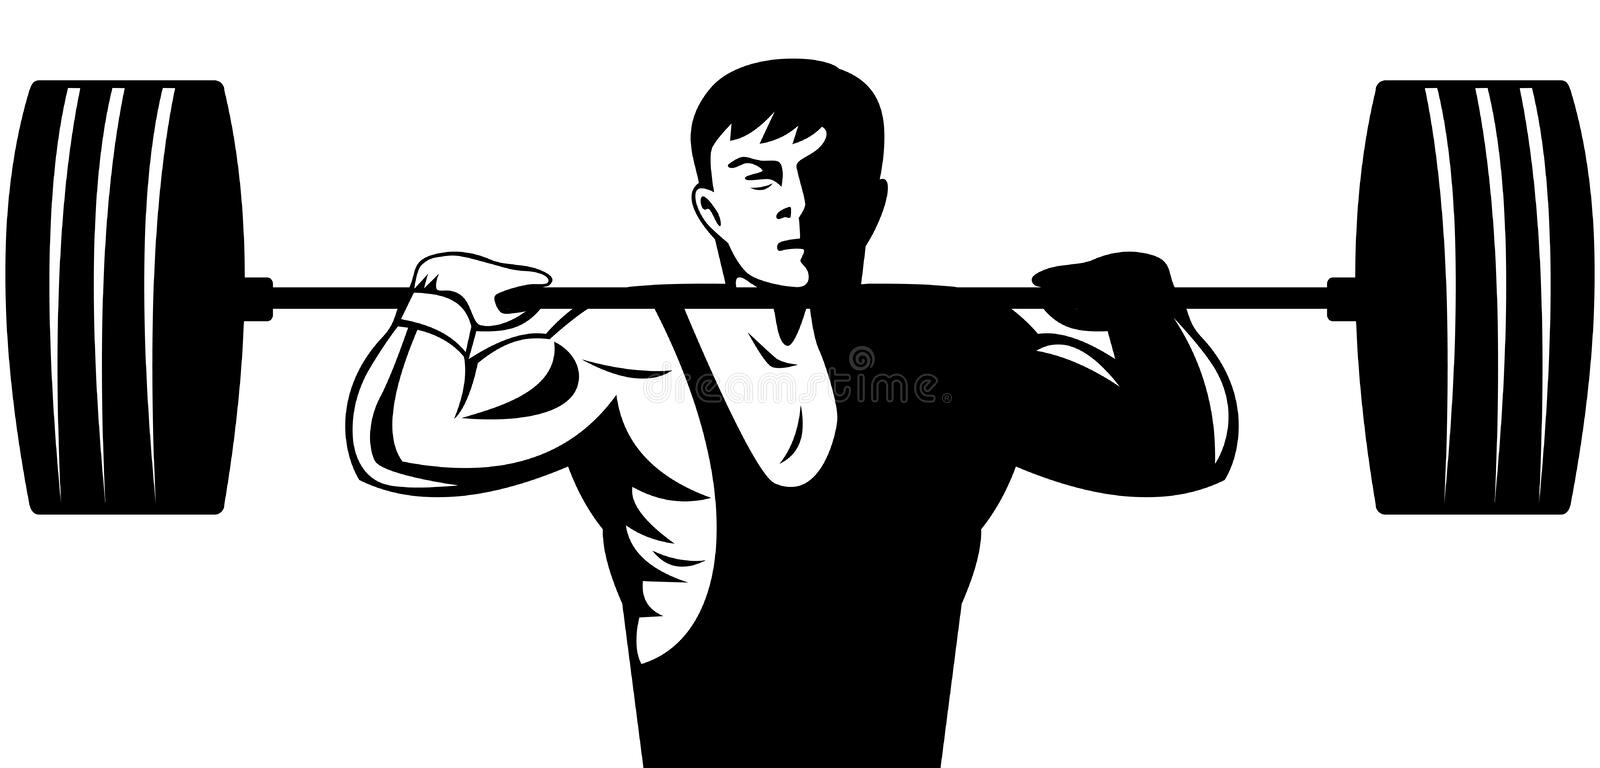 Weightlifter illustration stock